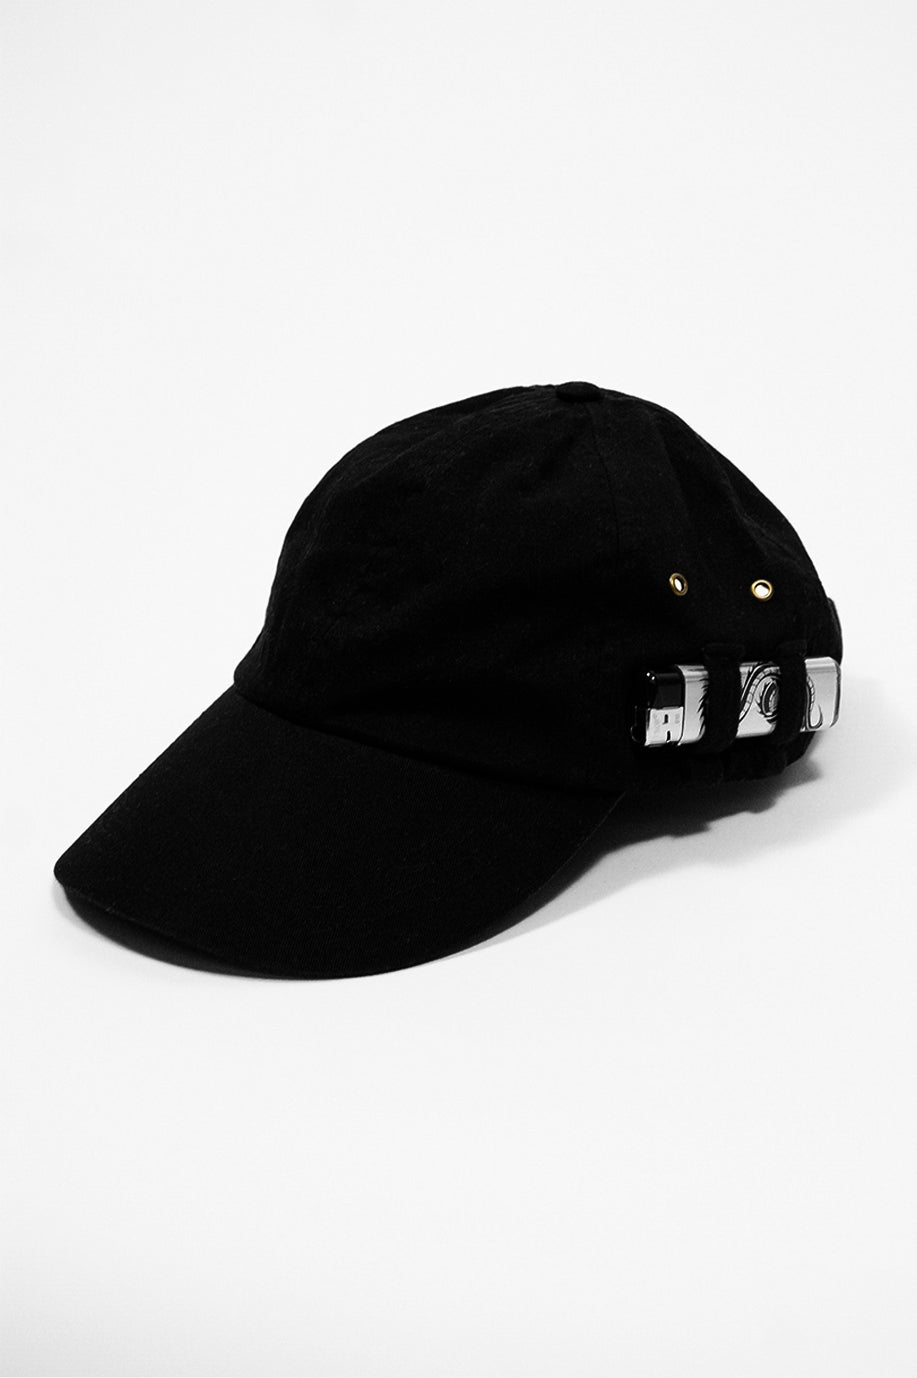 Image of Fire Cap (black)